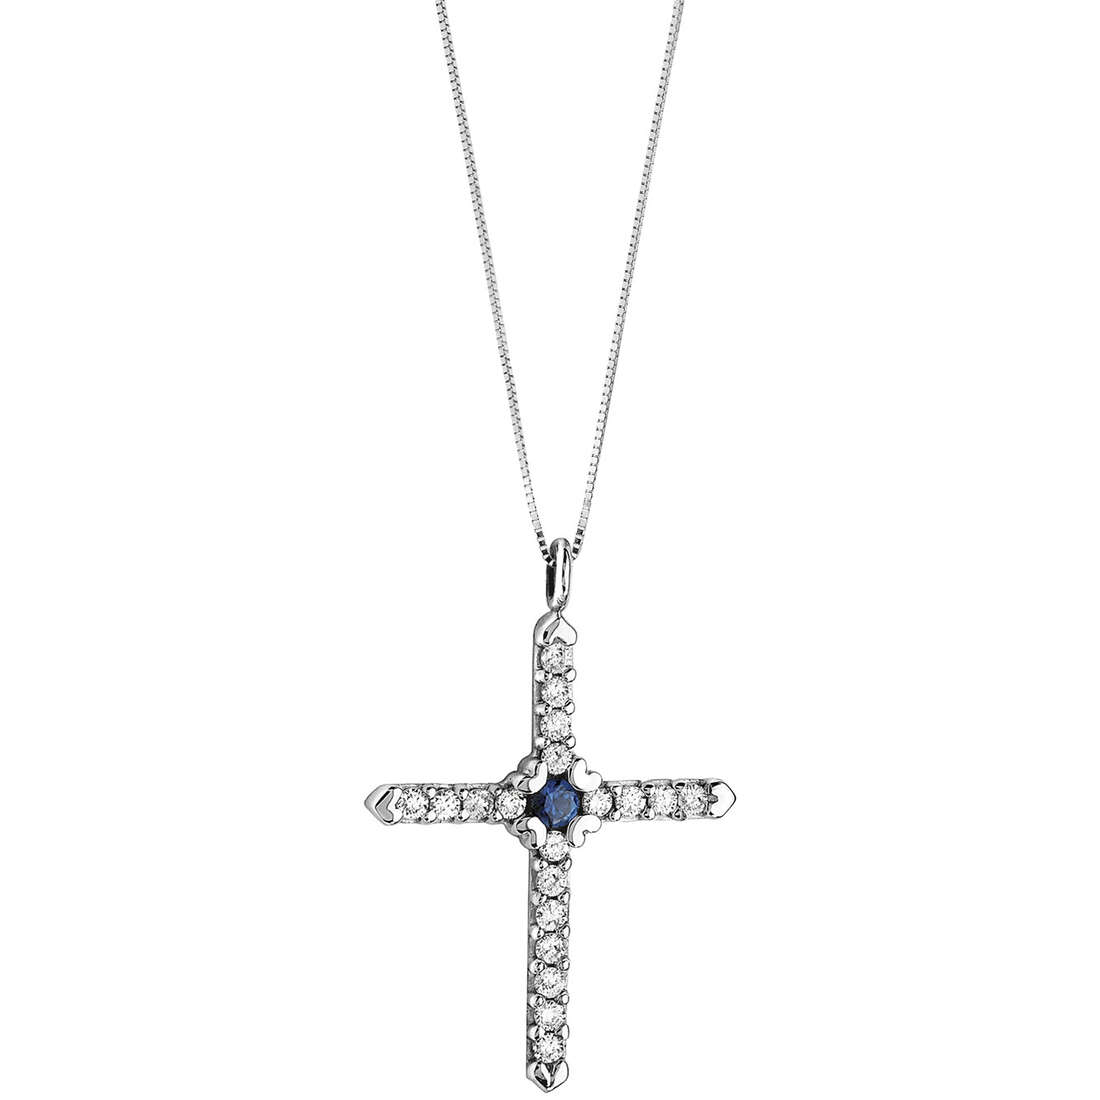 necklace woman jewellery Comete Fantasie di diamanti GLB 1144